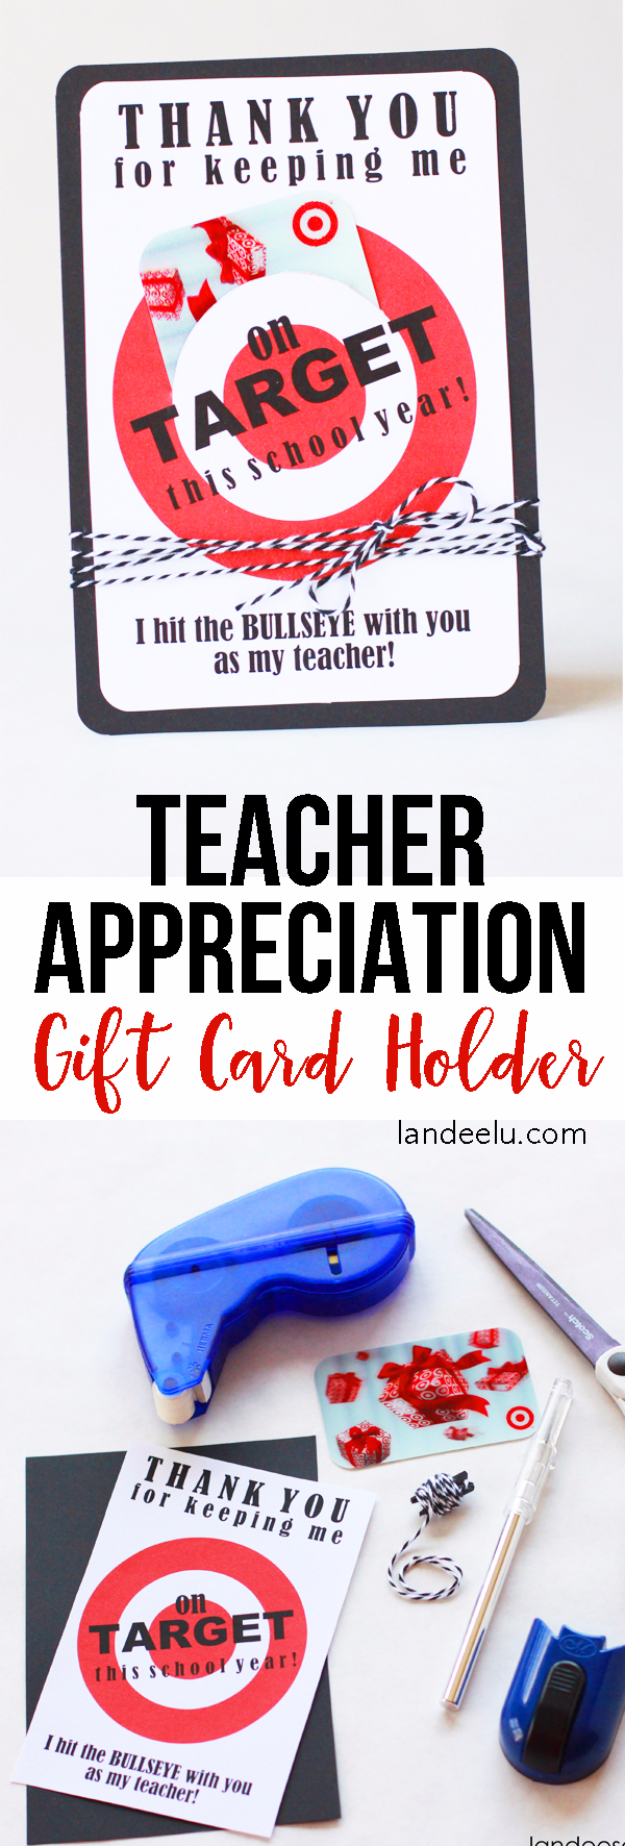 DIY Teacher Gifts - Target Gift Card Holder - Cheap and Easy Presents and DIY Gift Ideas for Teachers at Christmas, End of Year, First Day and Birthday - Teacher Appreciation Gifts and Crafts - Cute Mason Jar Ideas and Thoughtful, Unique Gifts from Kids #diygifts #teachersgifts #diyideas #cheapgifts